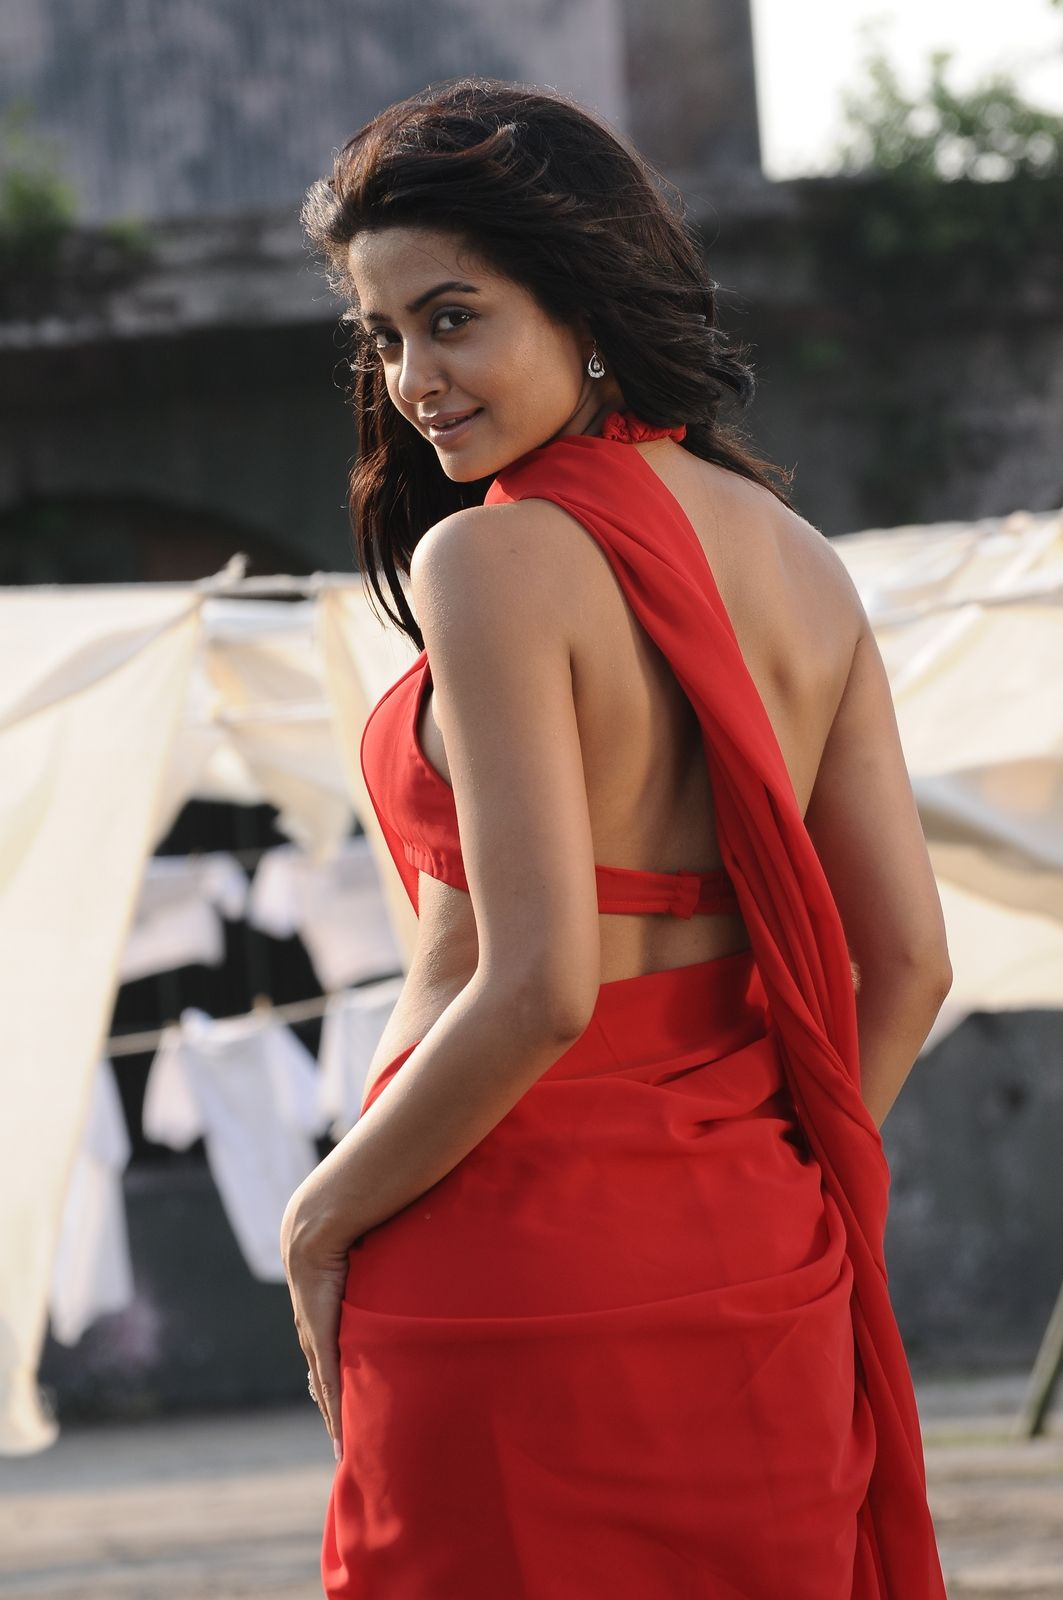 Surveen chawla in backless blouse surveen chawla pinterest surveen chawla in backless blouse thecheapjerseys Images